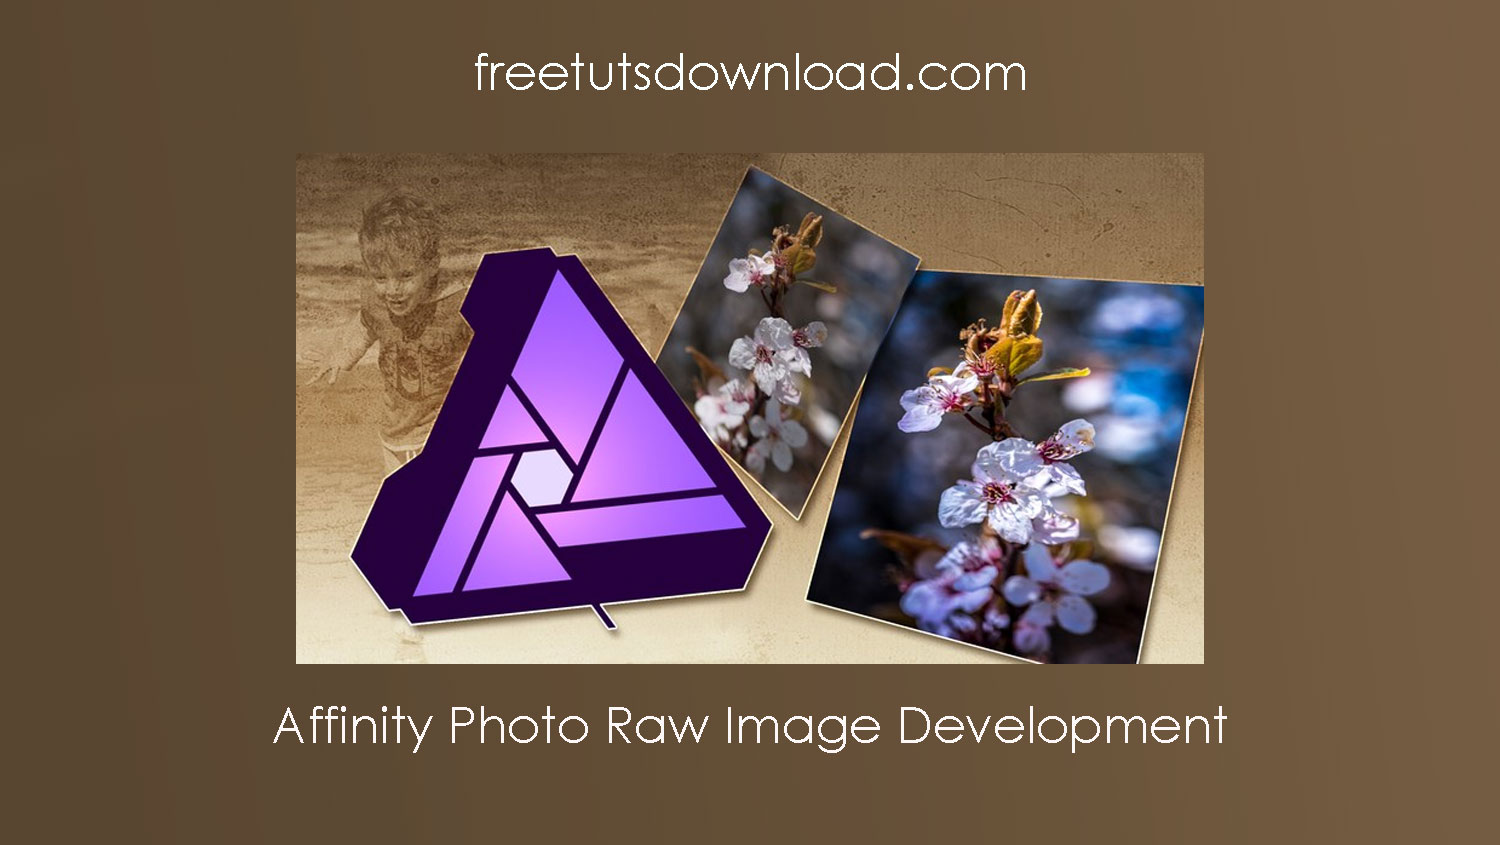 Affinity Photo Raw Image Development Free Download